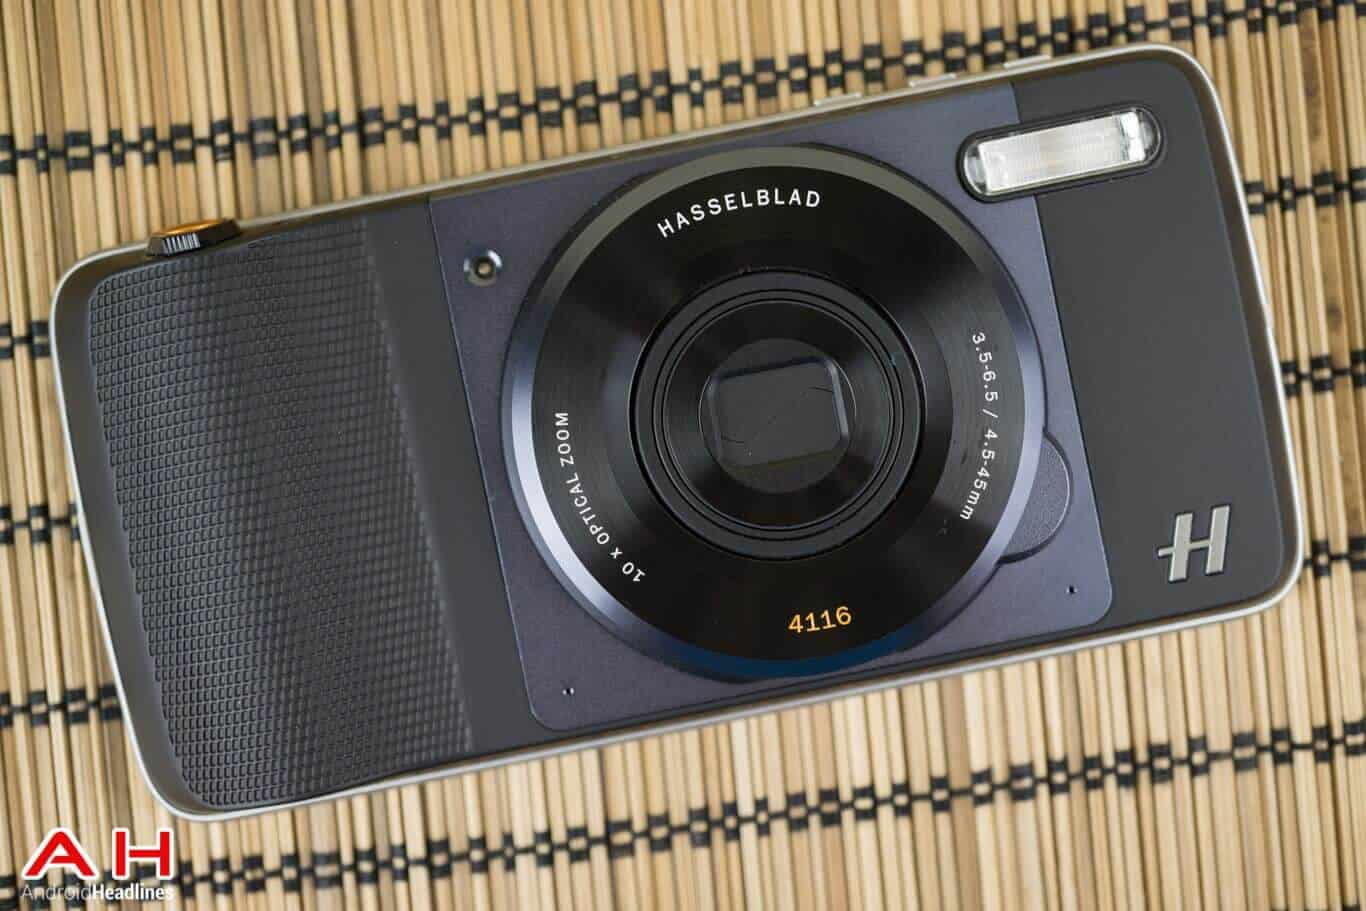 Hasselblad-Camera-Moto-Mod-Review-AM-AH-1